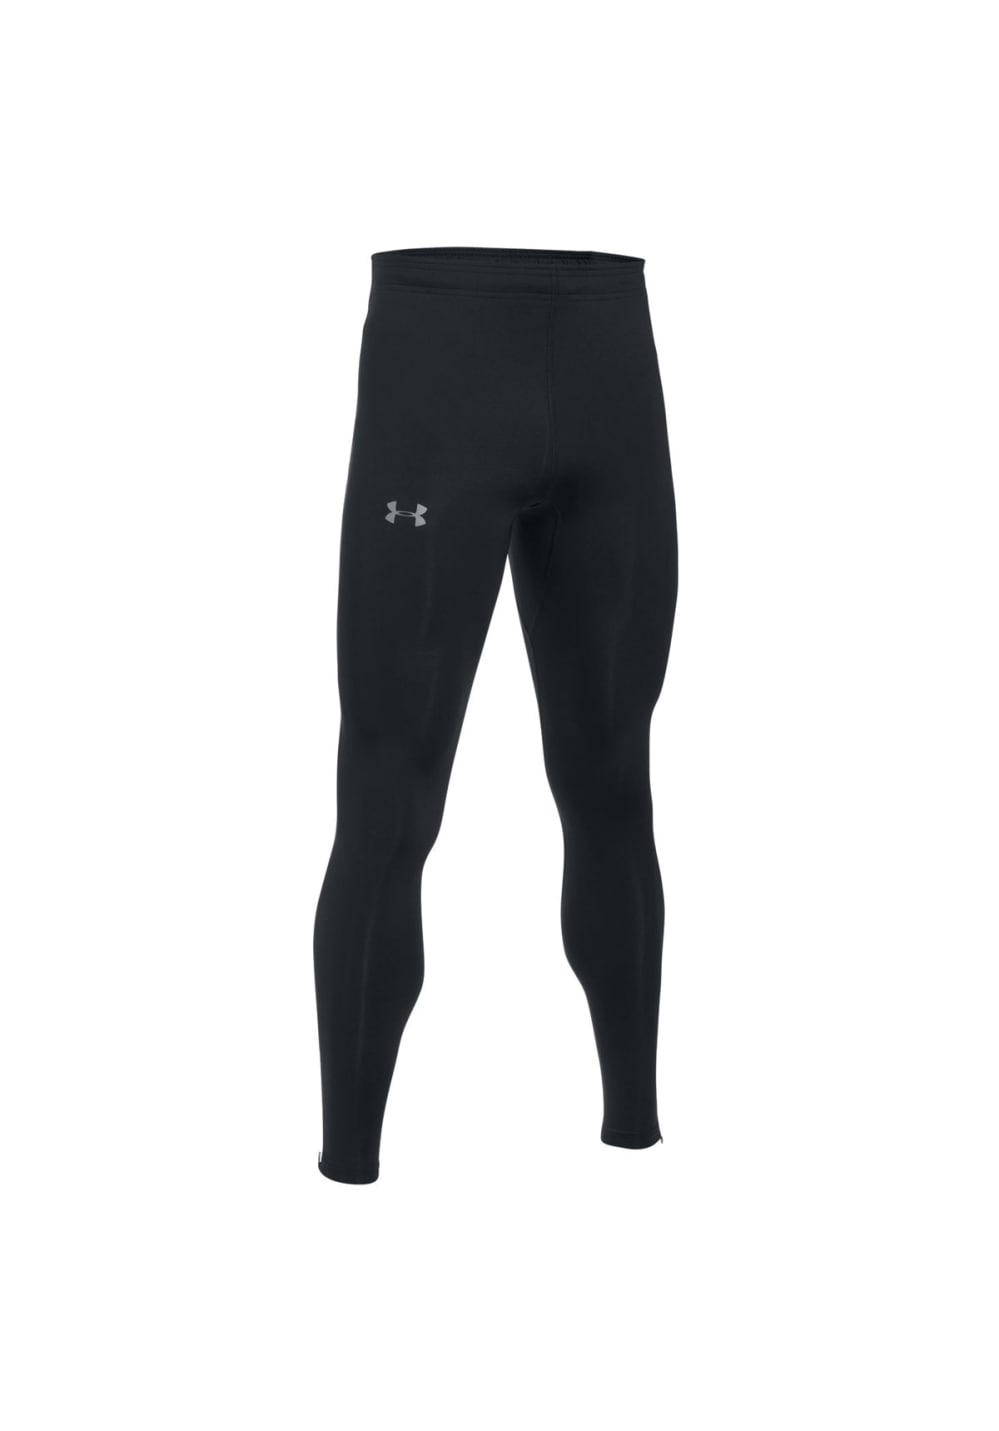 Under Armour Nobreaks HG Tight Hommes Sous-vêtements fonctionnels